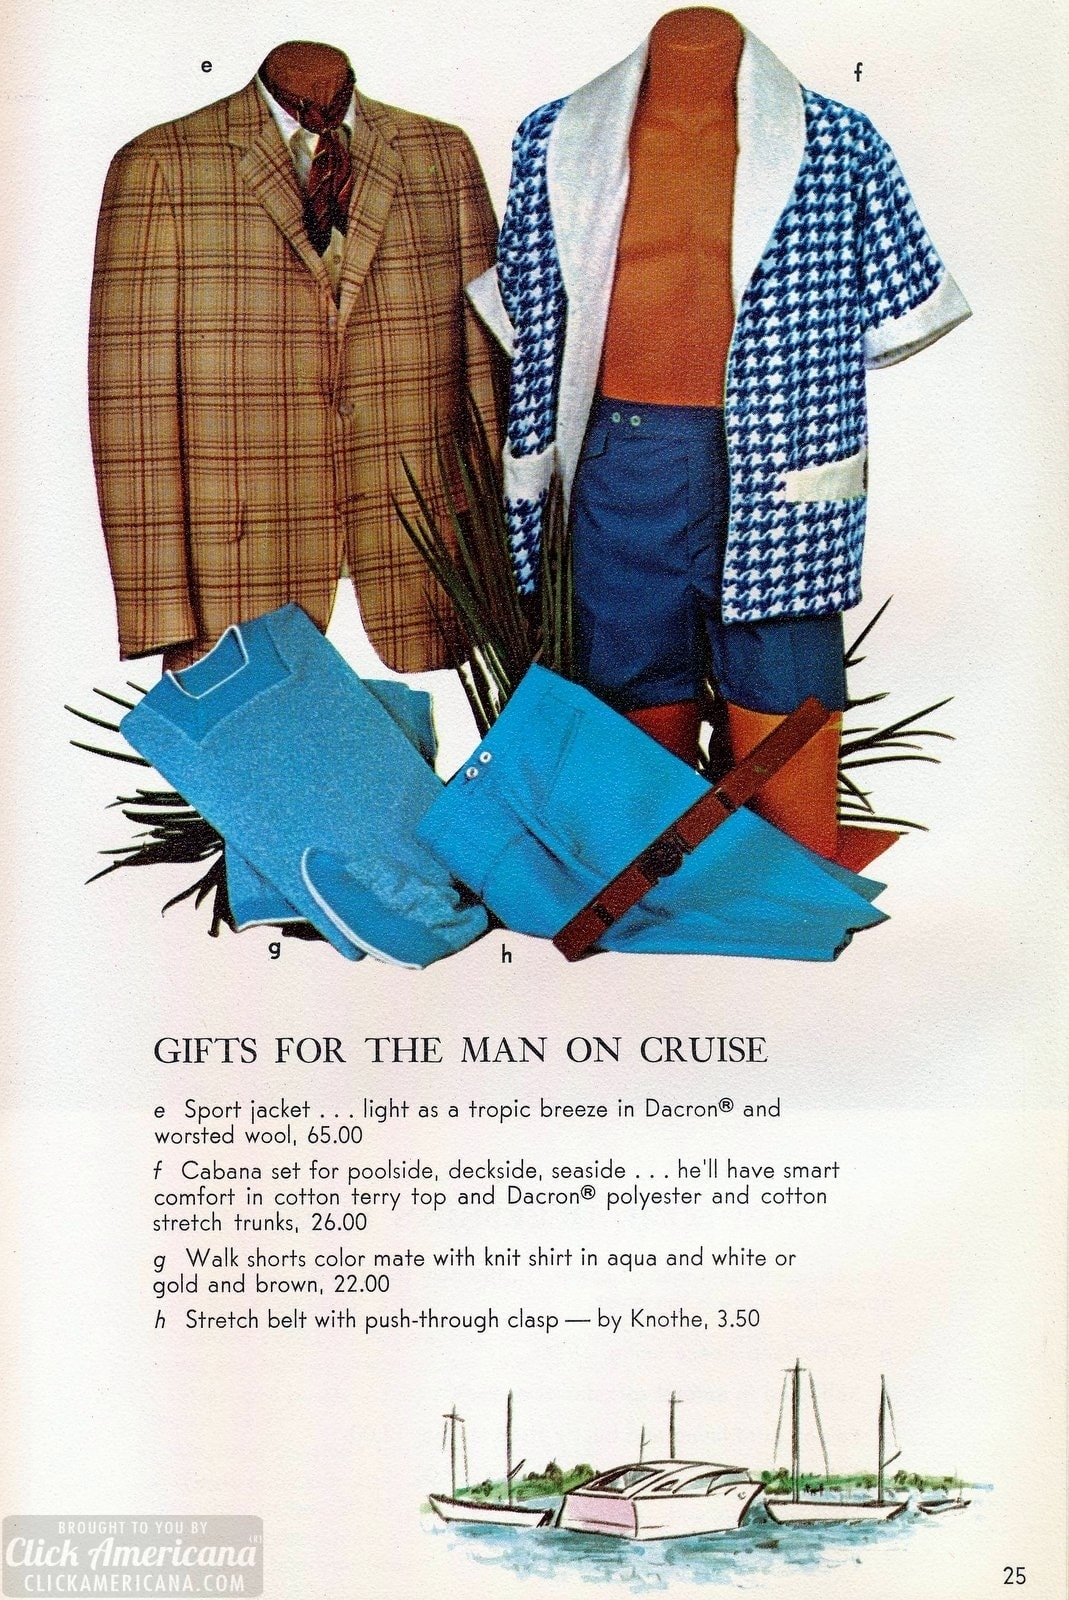 Vintage cruise wear and sports jackets, plus walking shorts for men